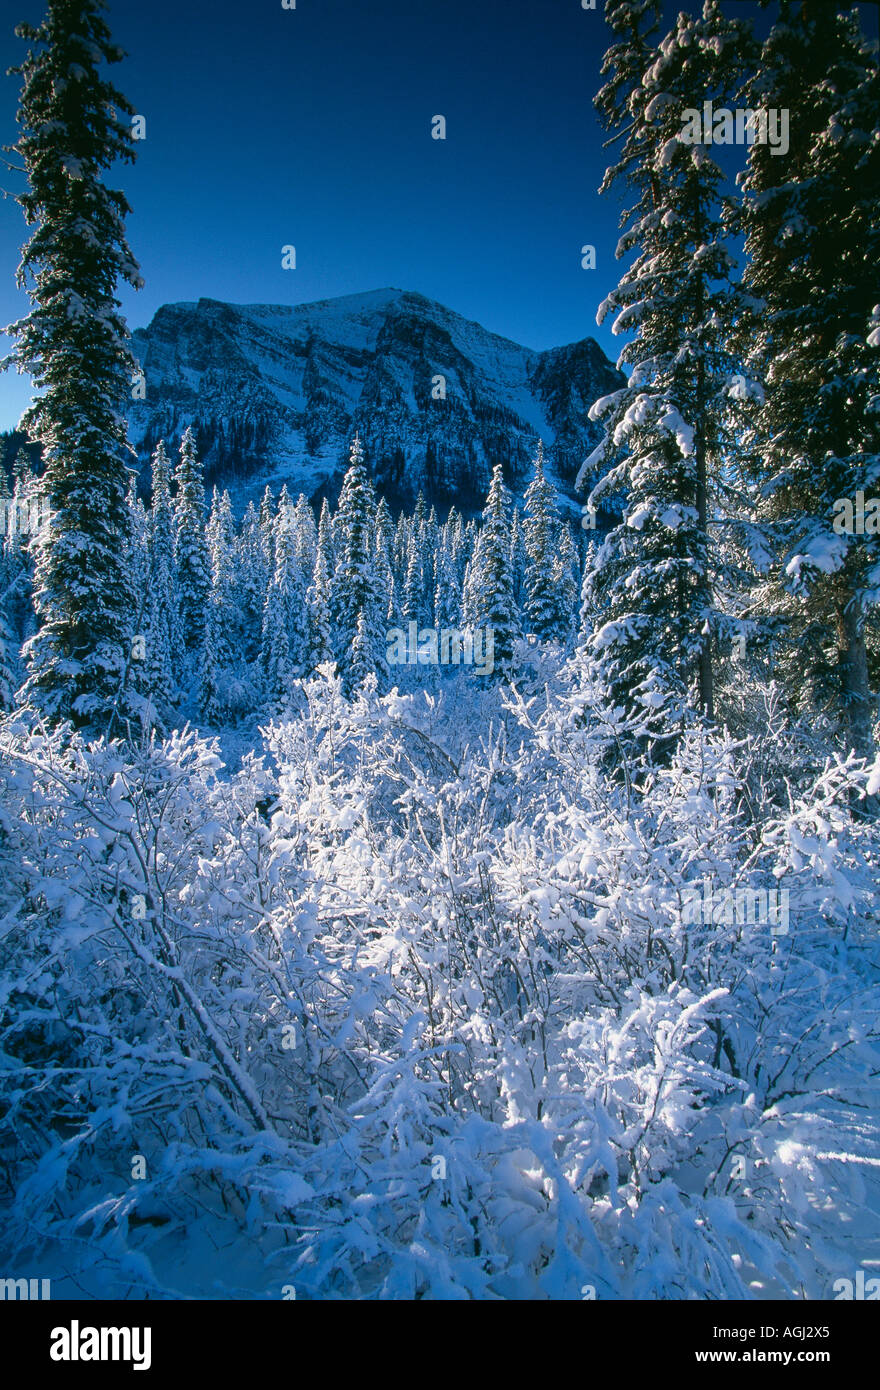 winter snow scene near Lake Louise Rockies Banff National Park Alberta Canada - Stock Image